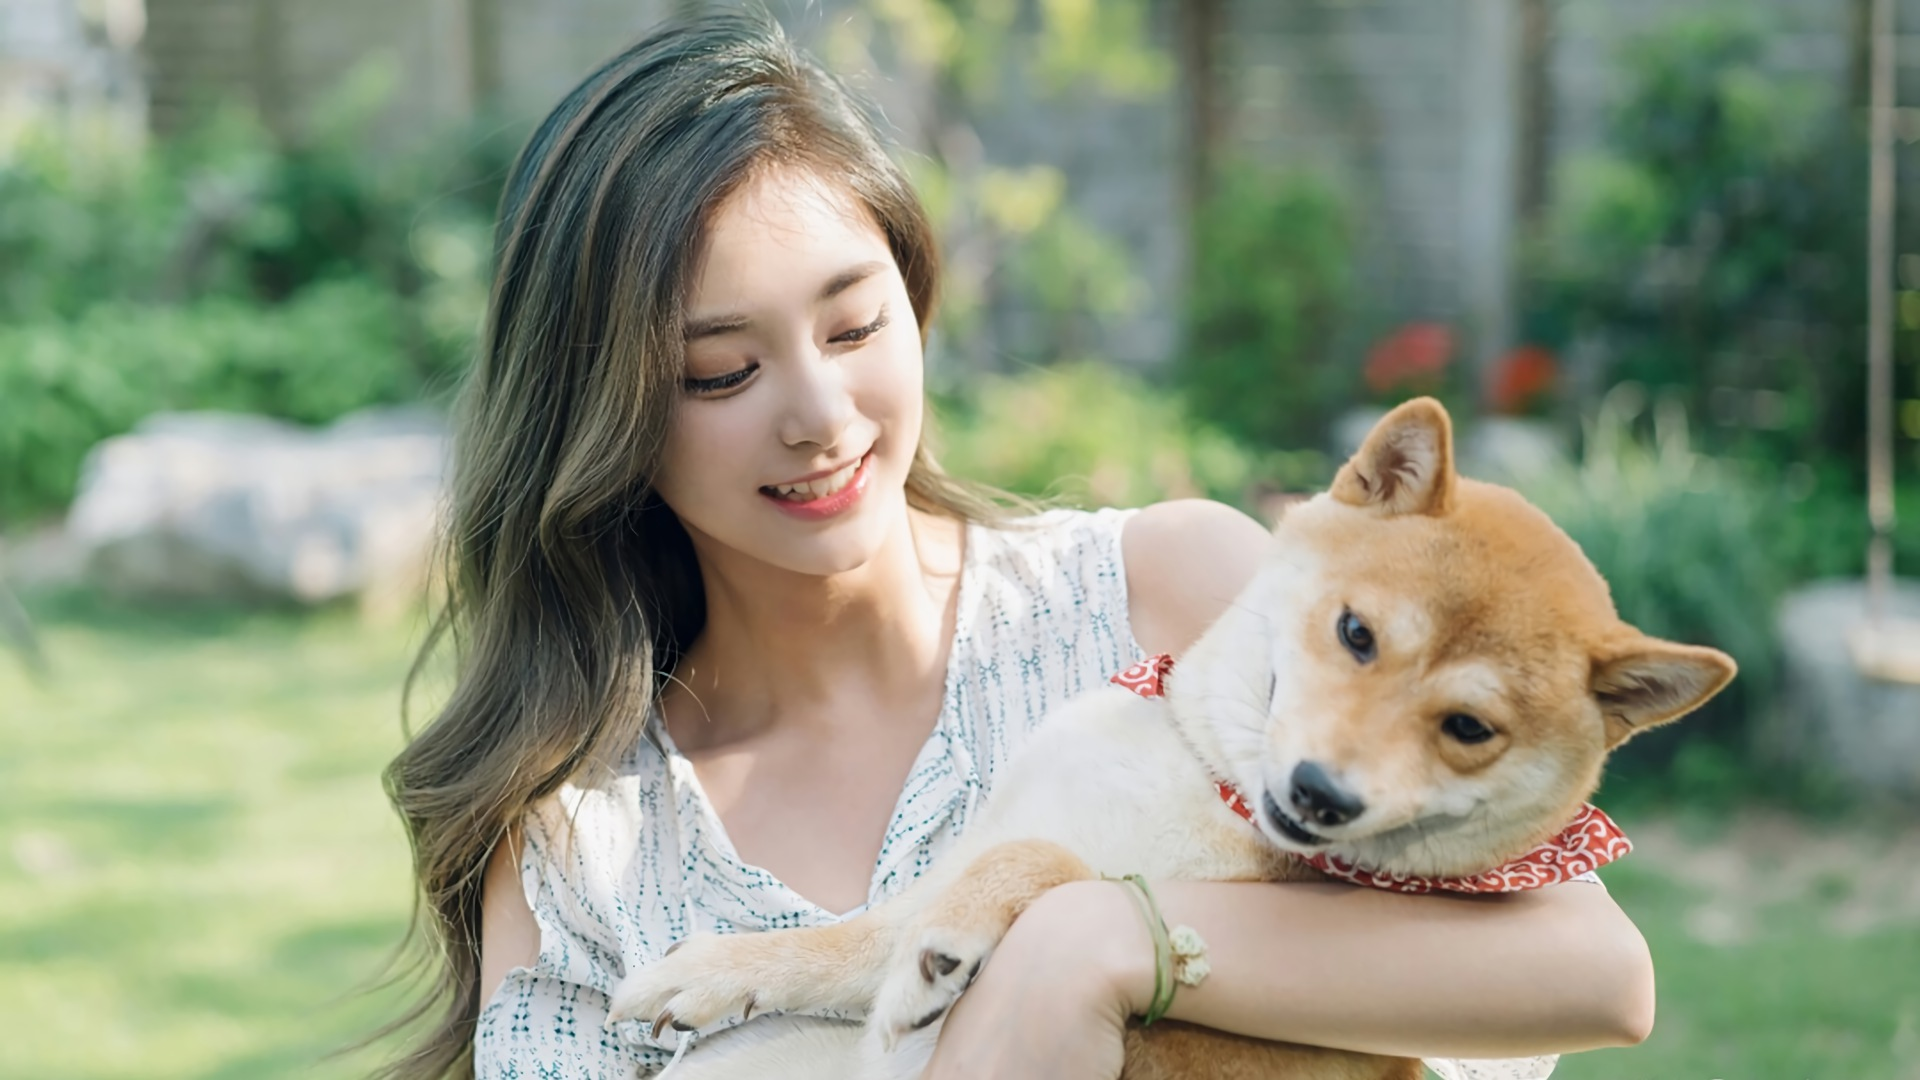 beautiful girl with dog in hands